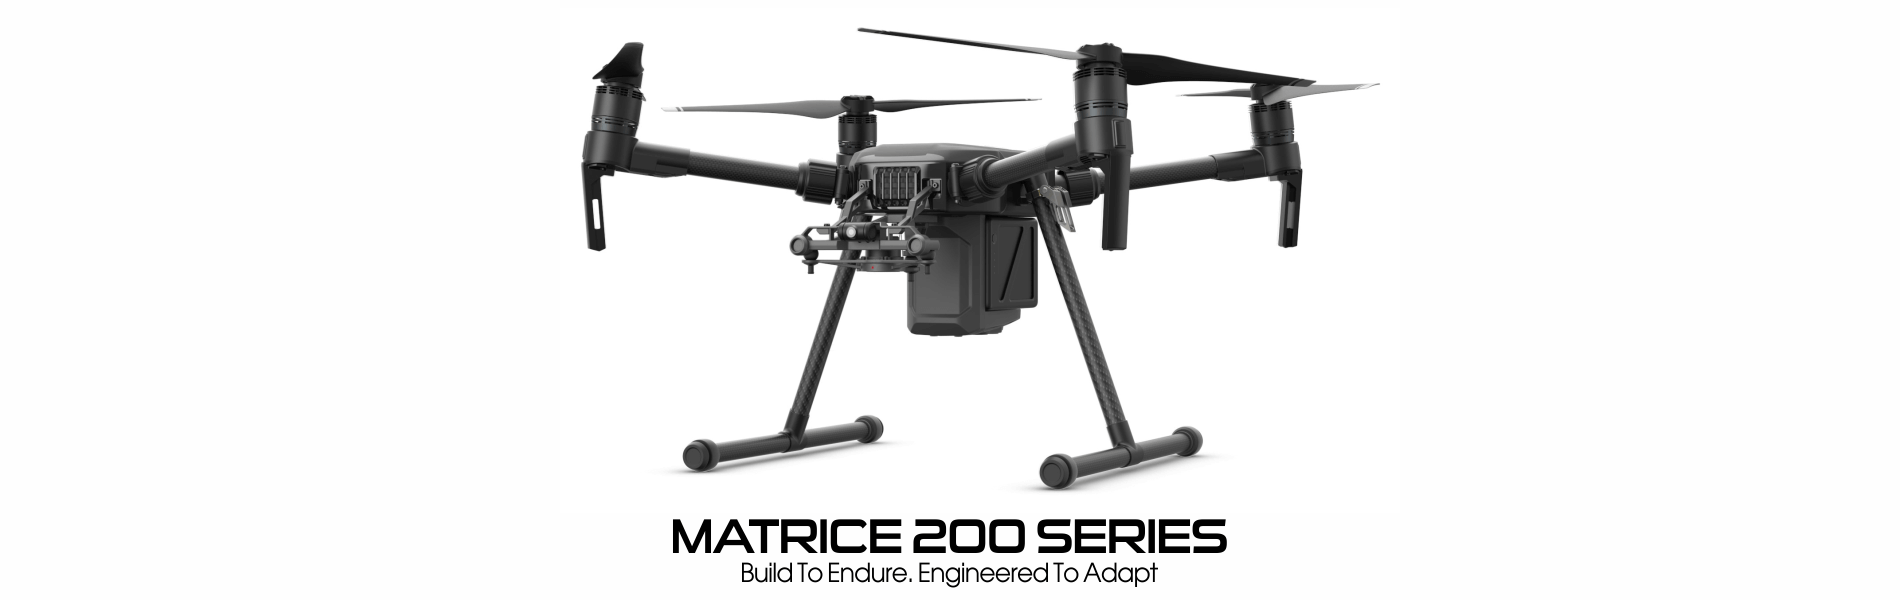 Drone_Solutions_Slider_3